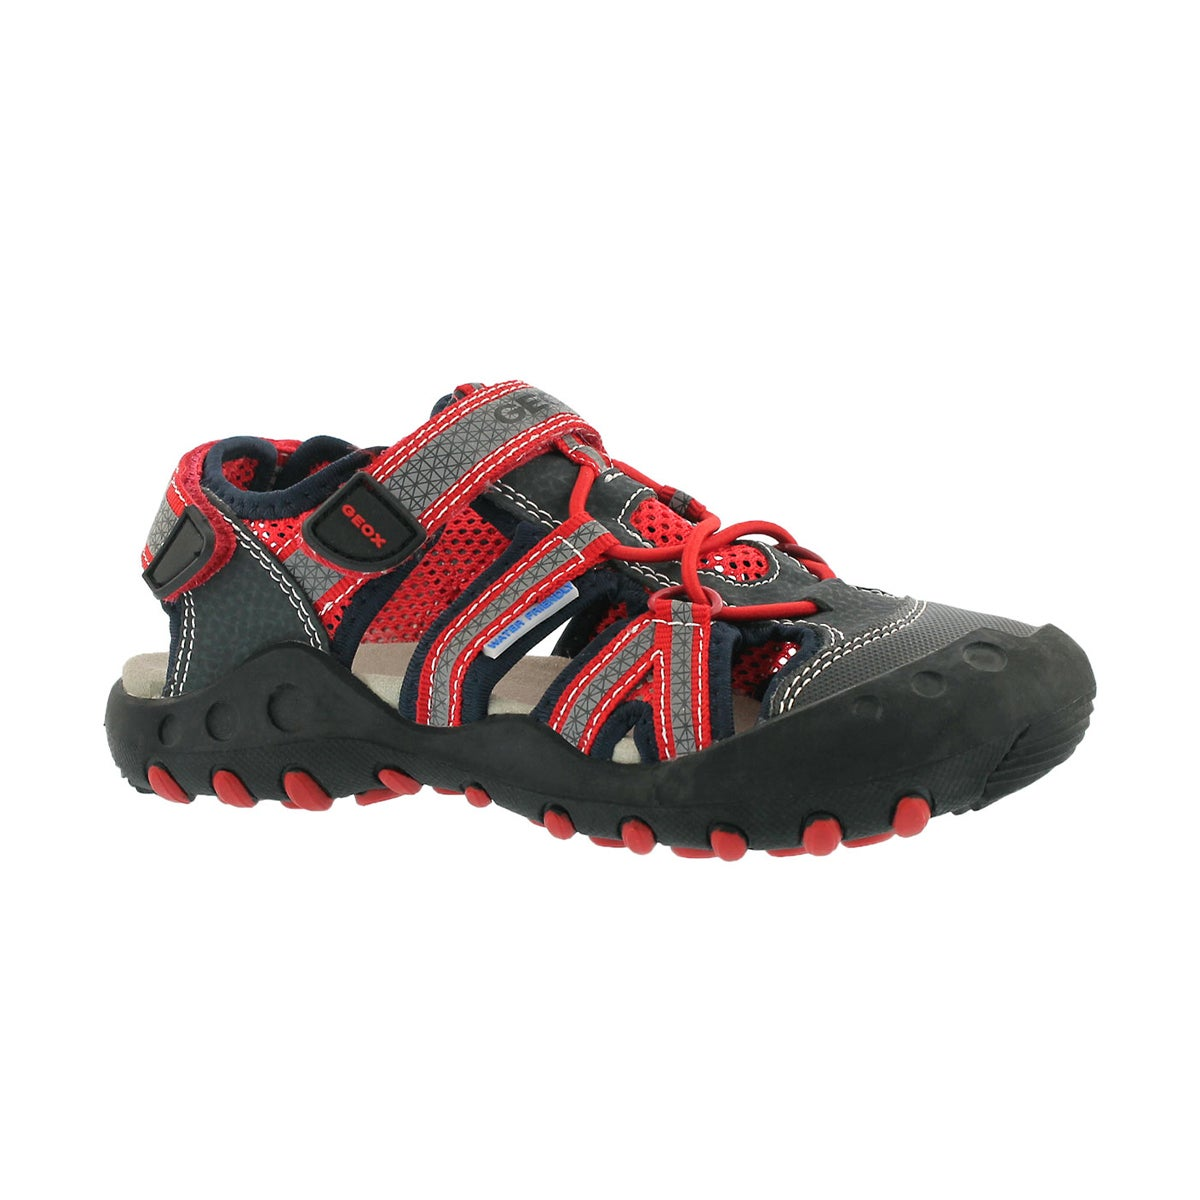 Boys' KYLE navy/red fisherman sandals